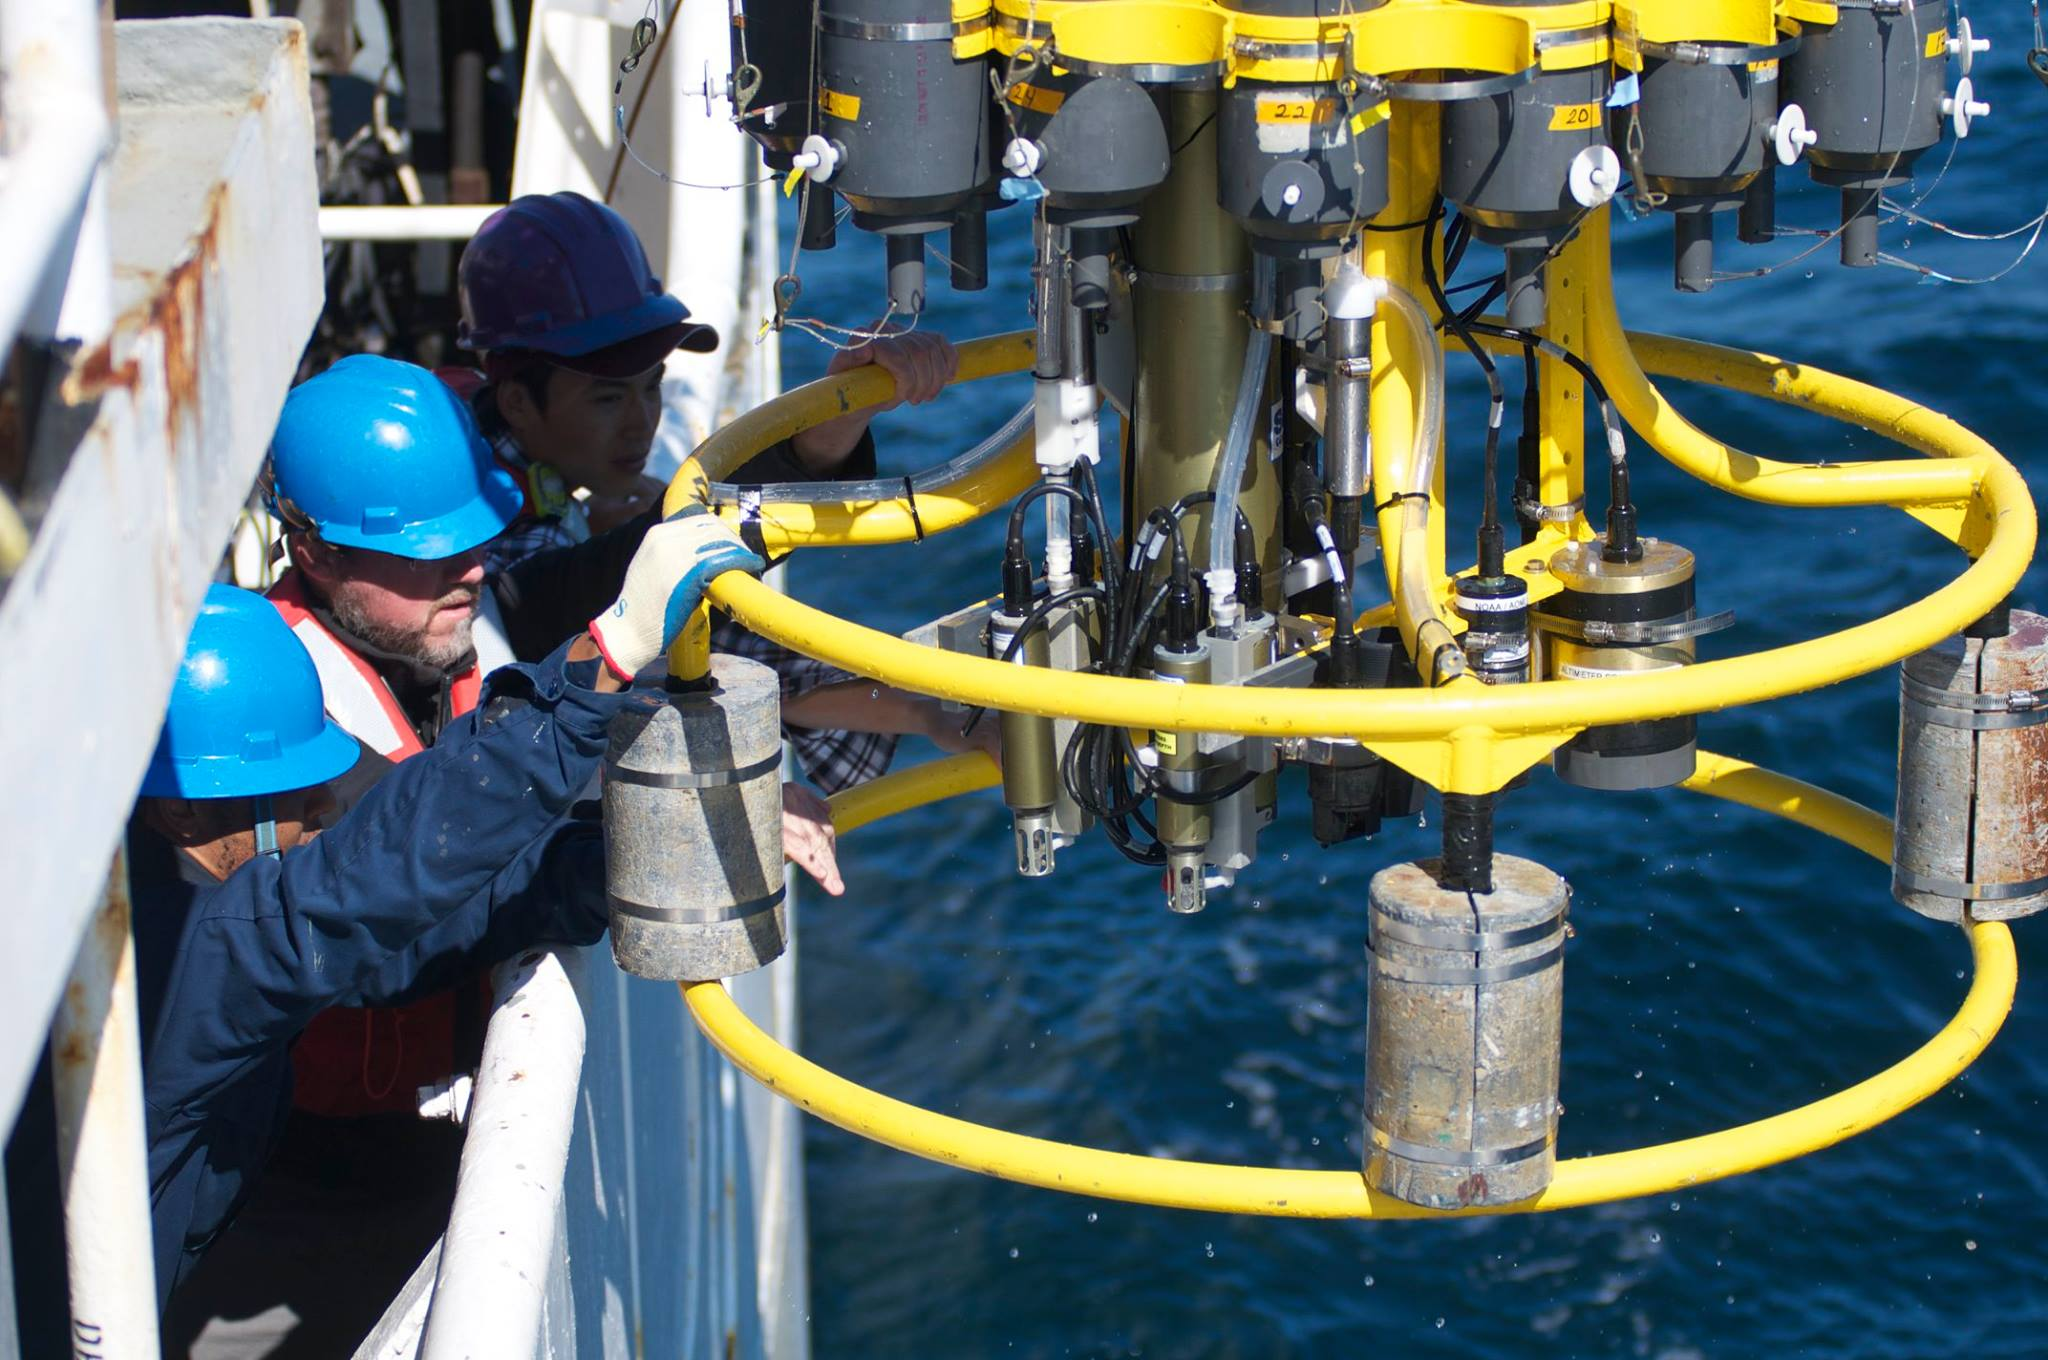 Retrieving the CTD from the water on an previous East Coast OA cruise. Image credit: NOAA